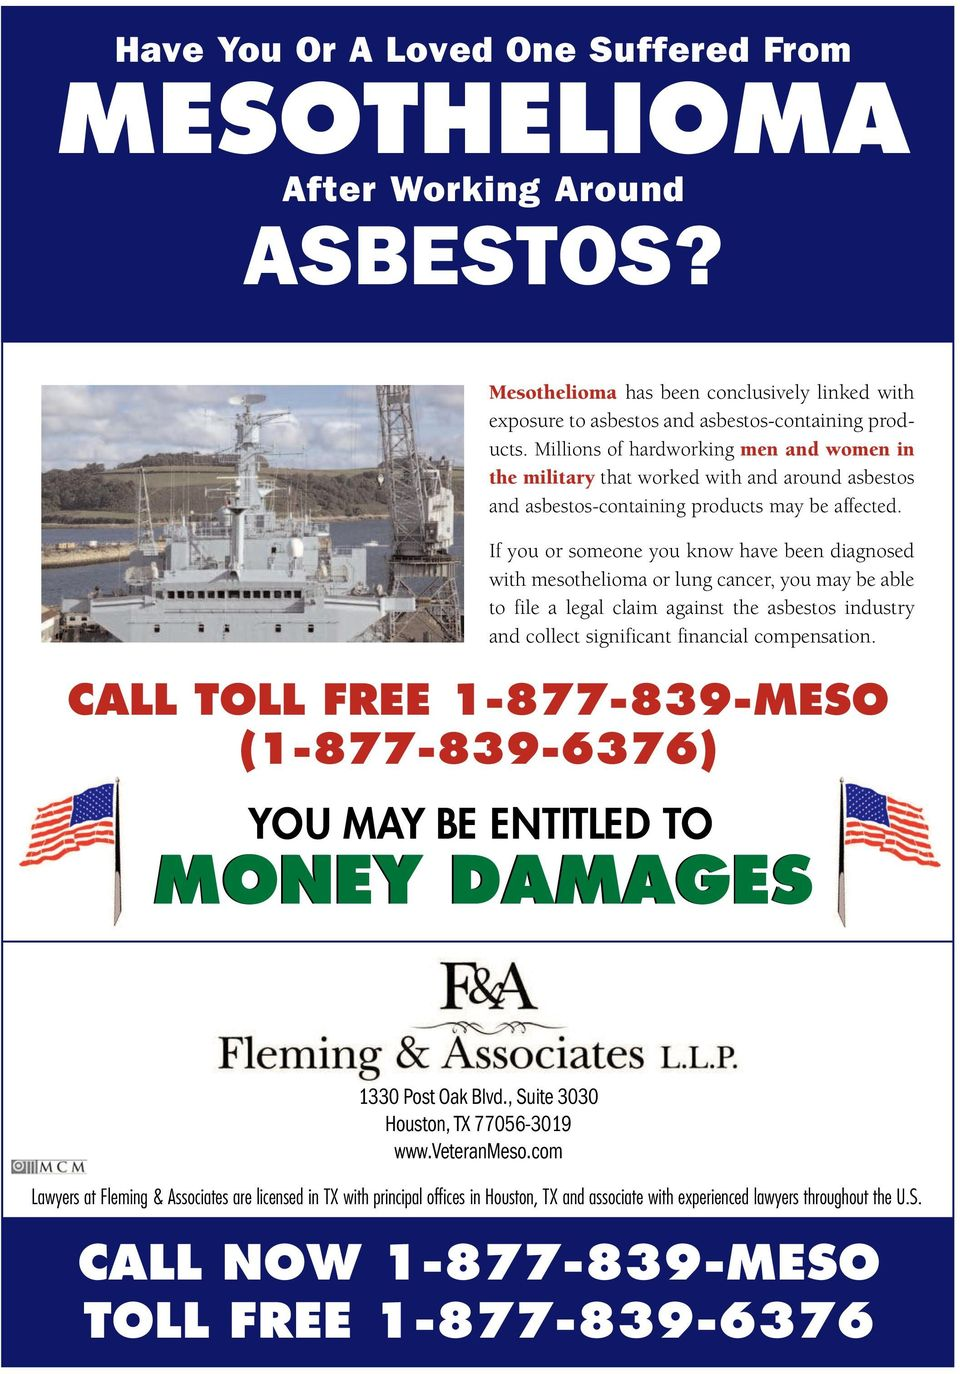 If you or someone you know have been diagnosed with mesothelioma or lung cancer, you may be able to file a legal claim against the asbestos industry and collect significant financial compensation.